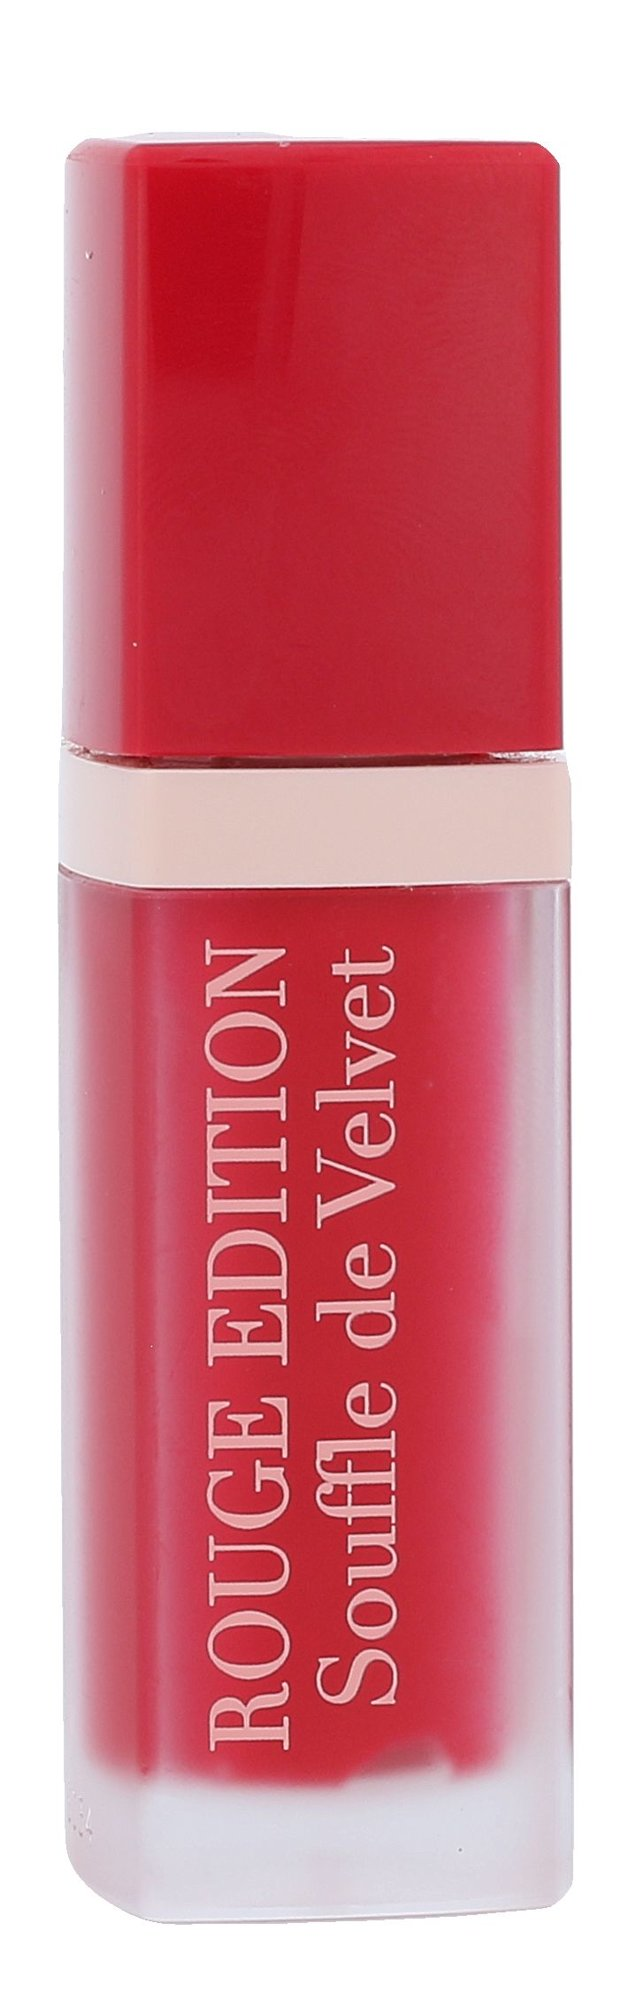 BOURJOIS Paris Rouge Edition Cosmetic 7,7ml 07 Plum Plum Pidou